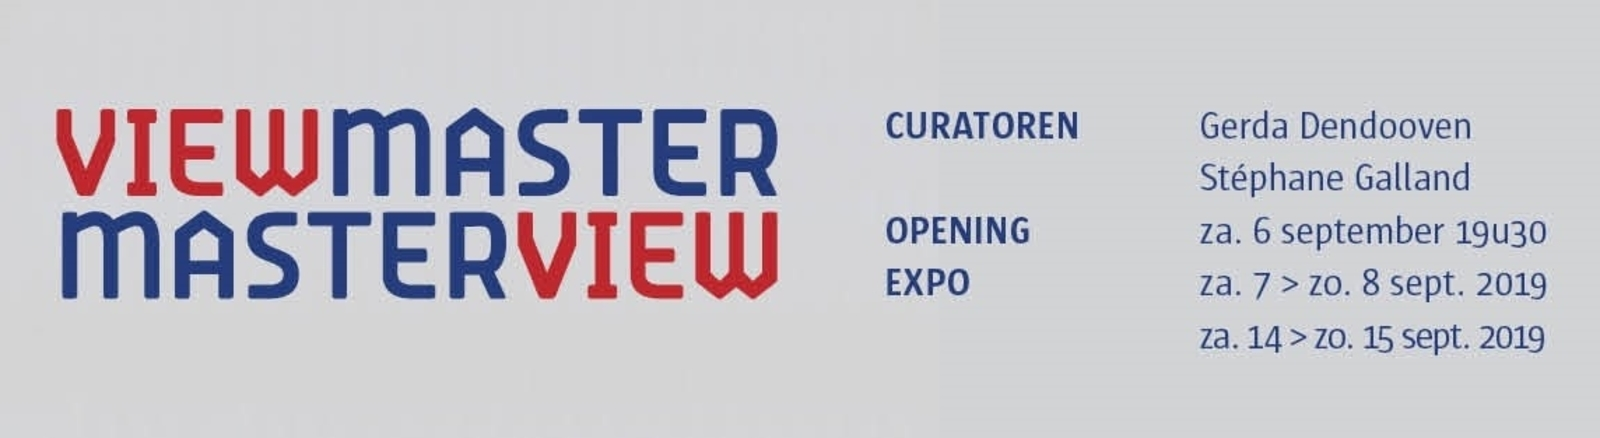 EXPO [ VIEWMASTER MASTERVIEW ]